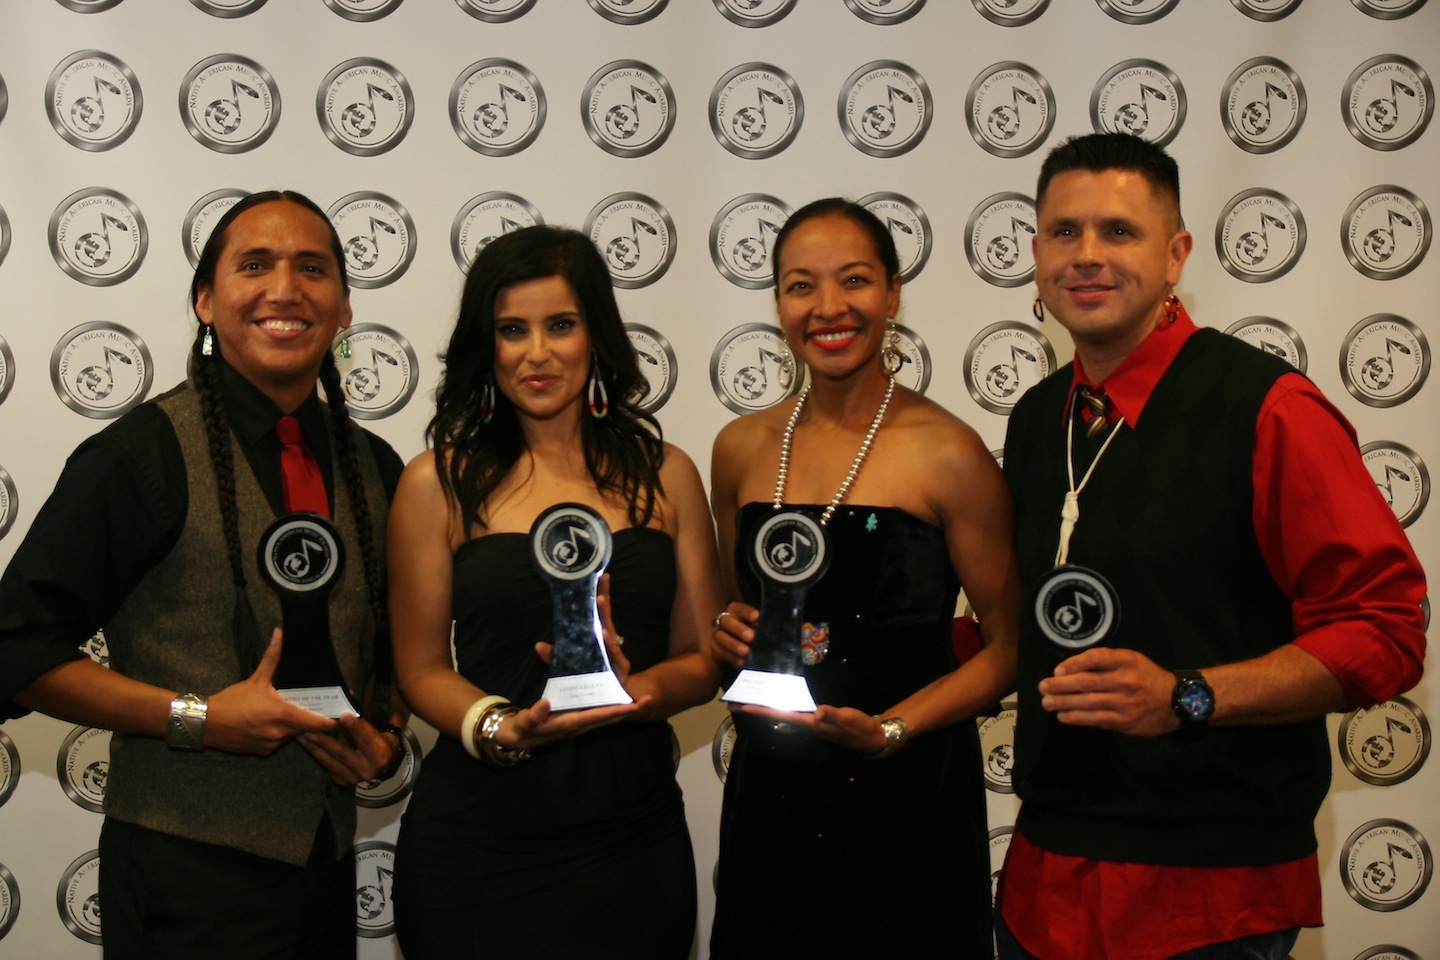 Living Legend Award winner Nelly Furtado, second from left, is shown with Tony Duncan (Performer of the Year), Radmilla Cody (Record of the Year) and Wayne Silas Jr. (Best Male Artist). (photo by Kim Acosta/NAMA)